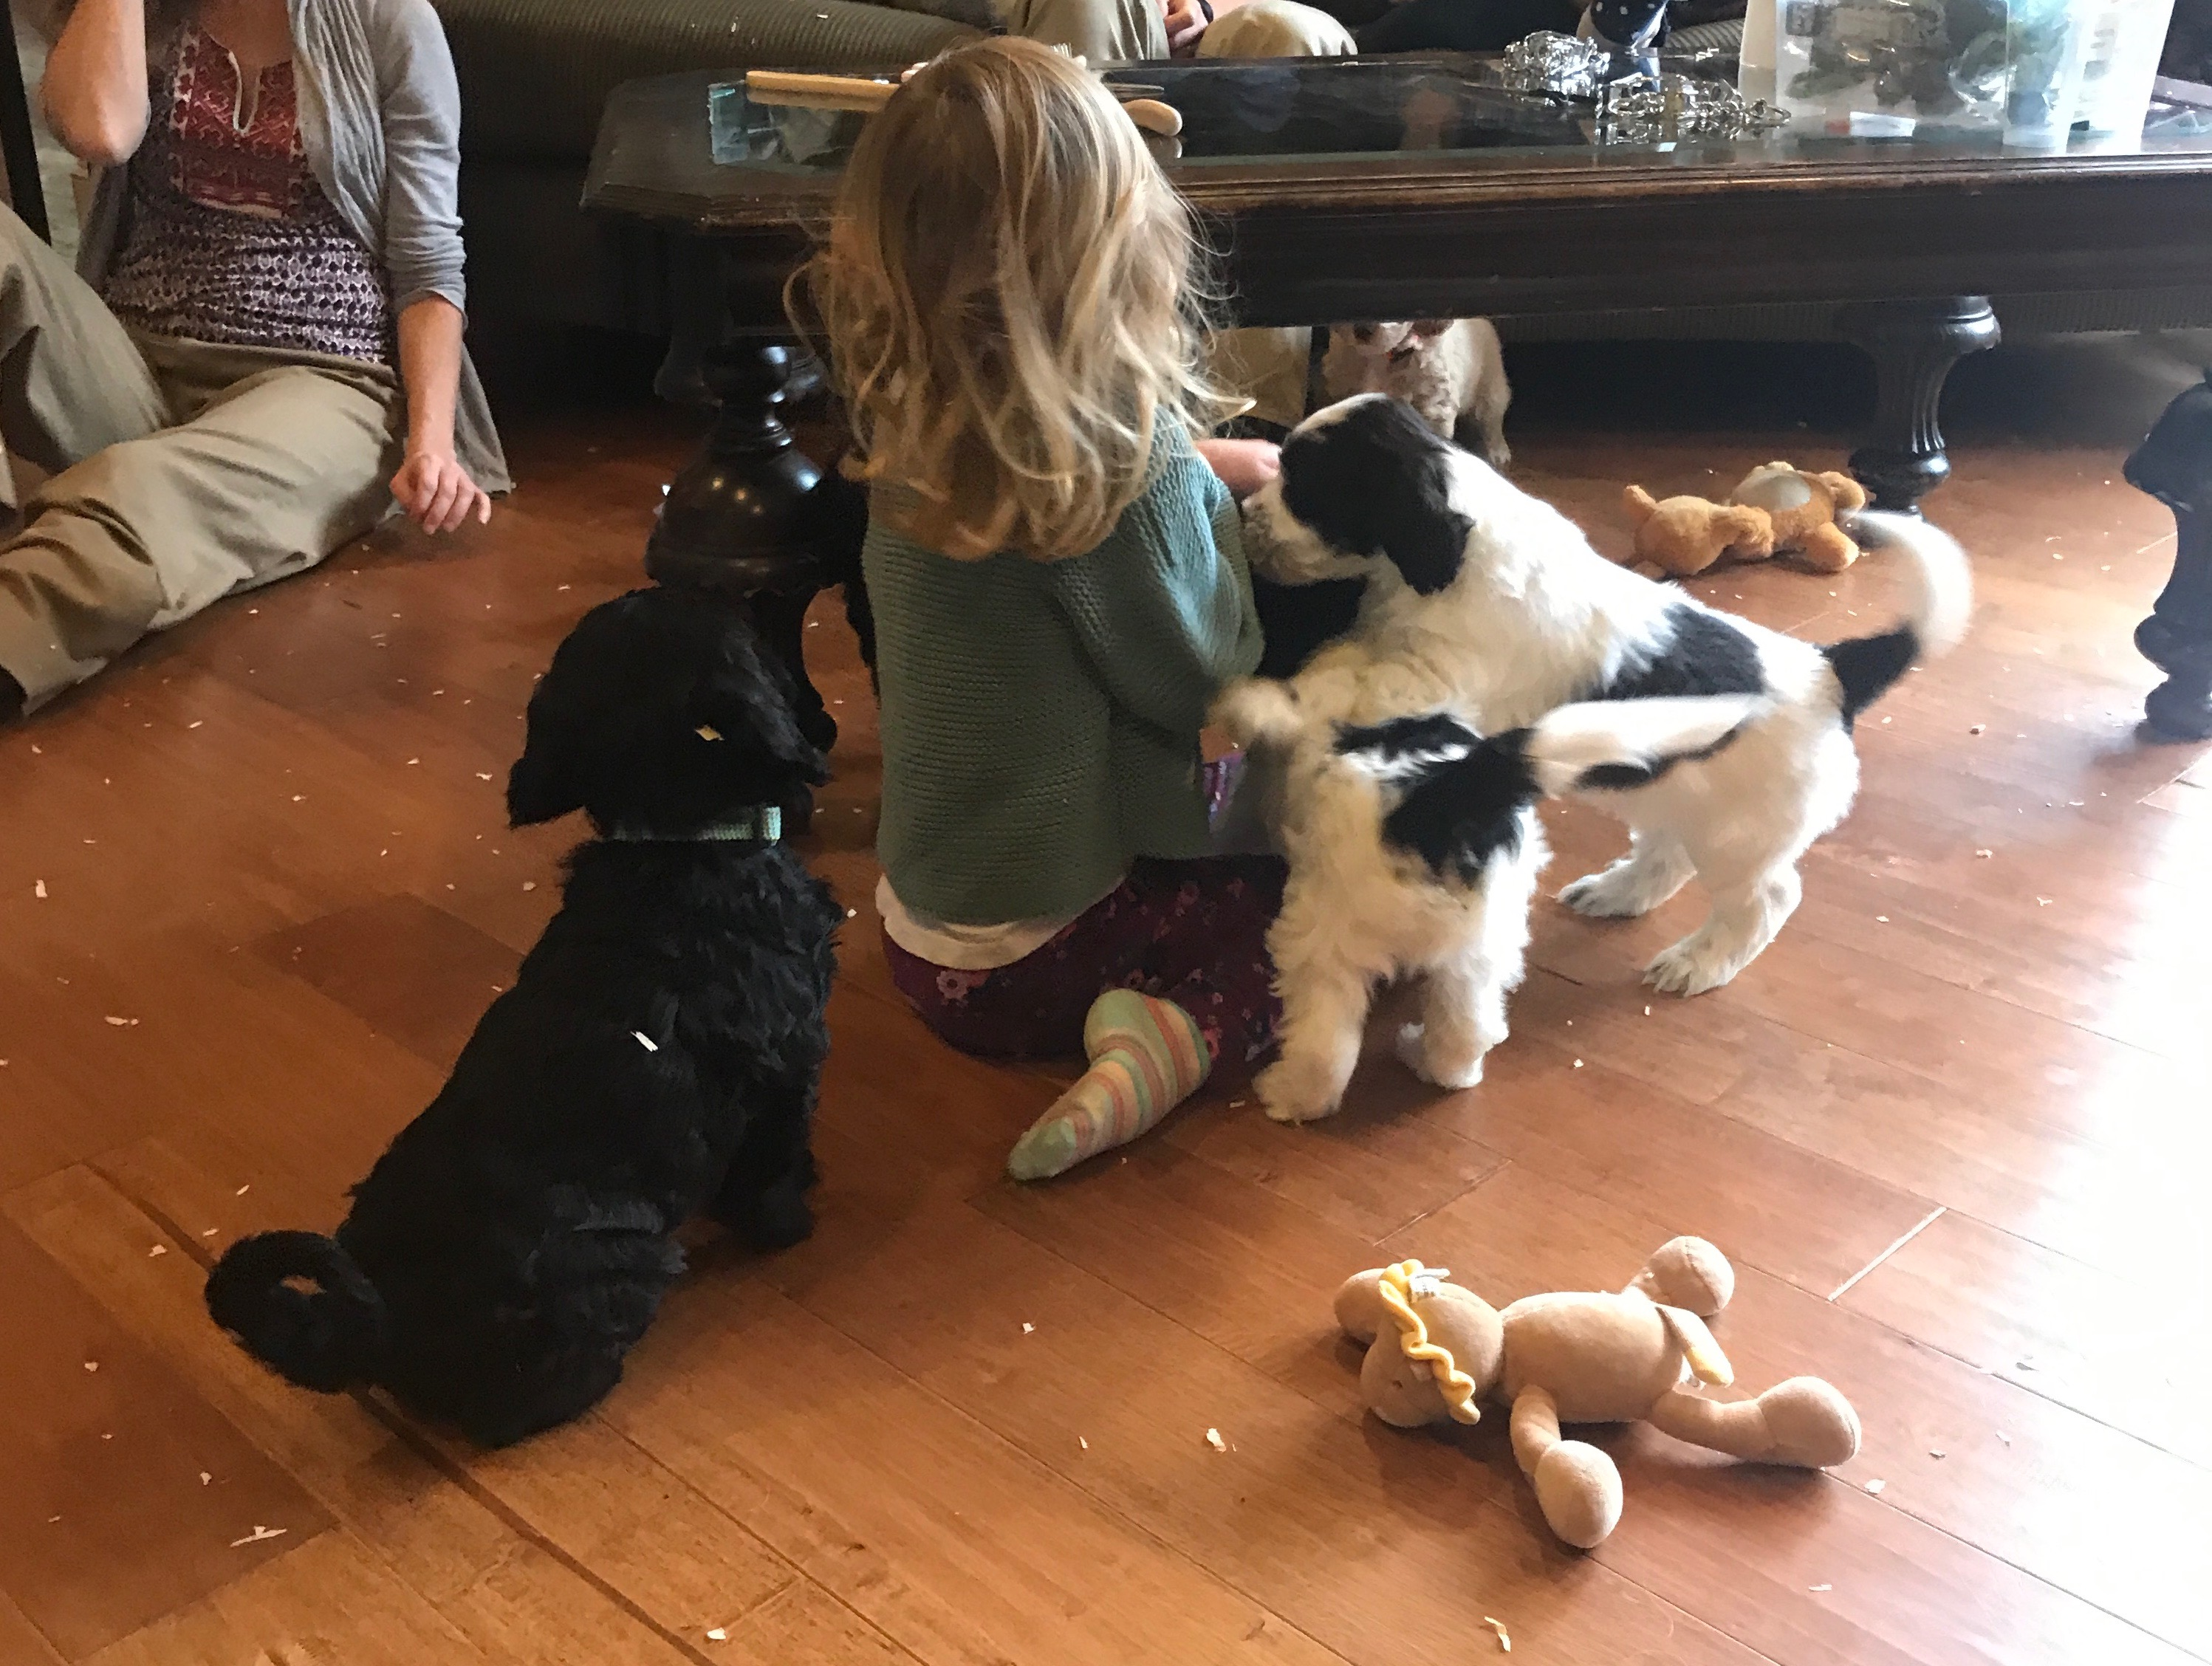 Puppies loving on little ones